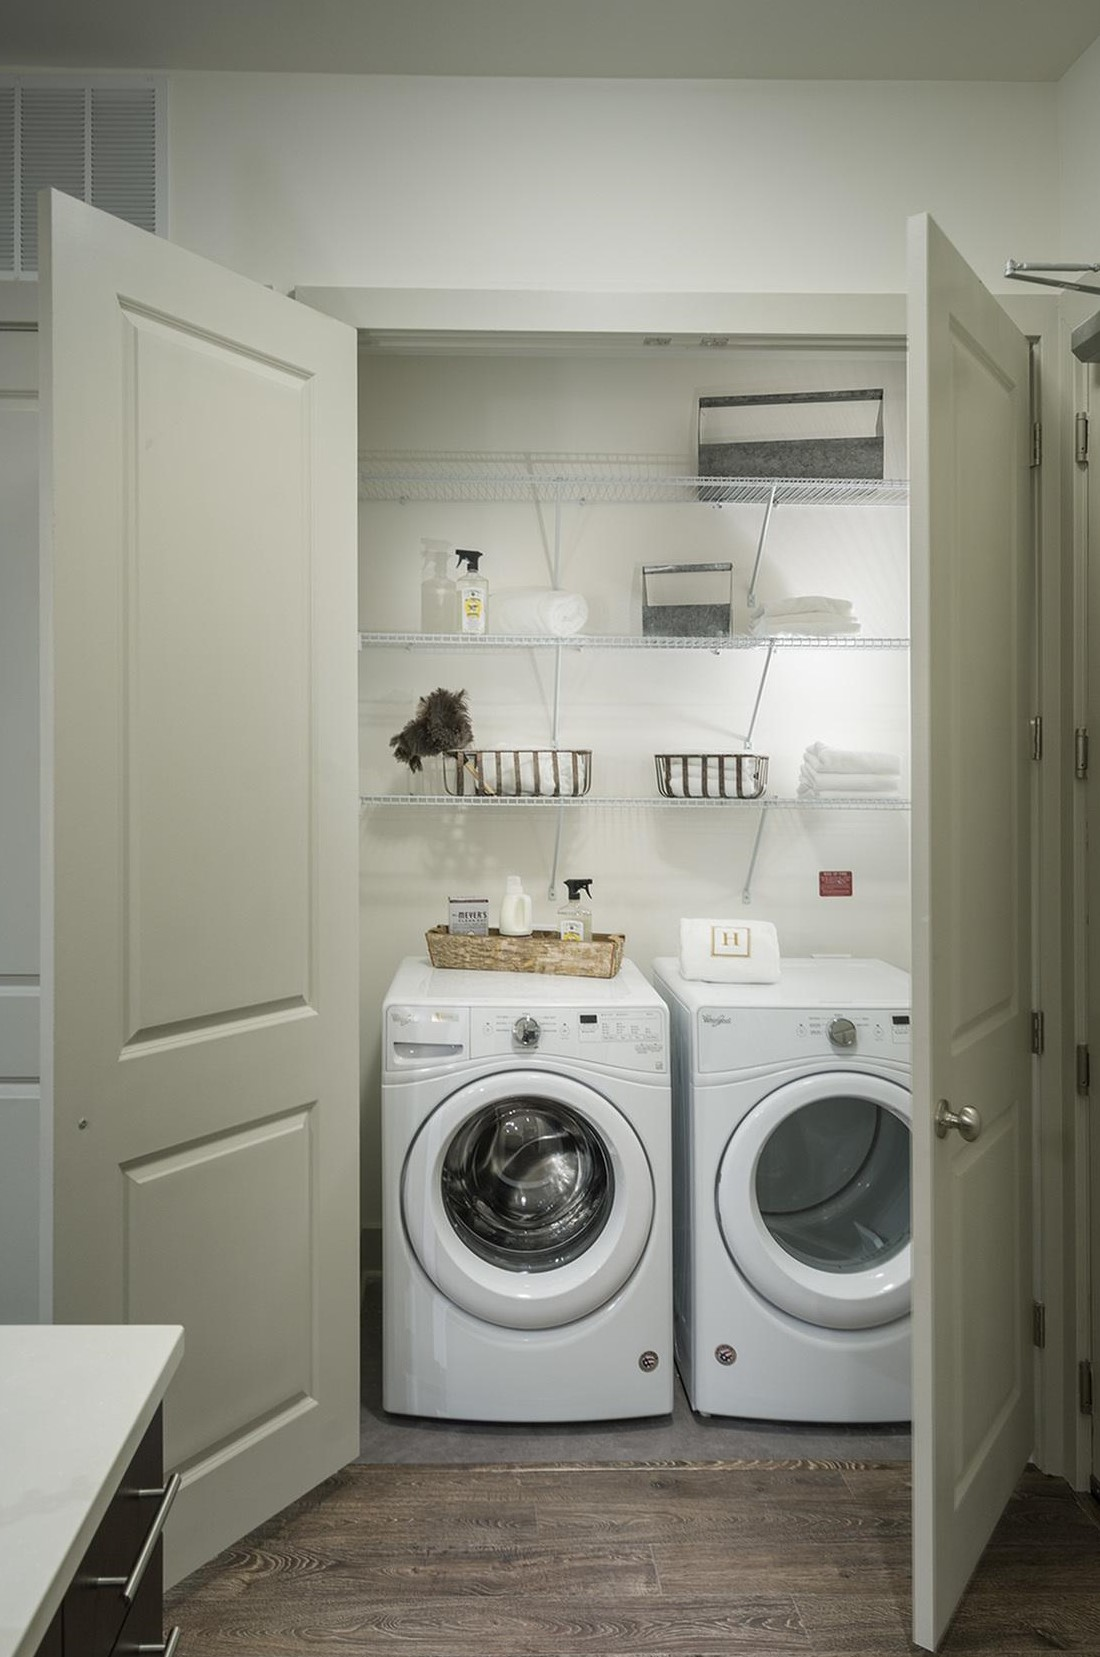 Wash and Dryer at Hanover West Peachtree Apartments in Atlanta, GA